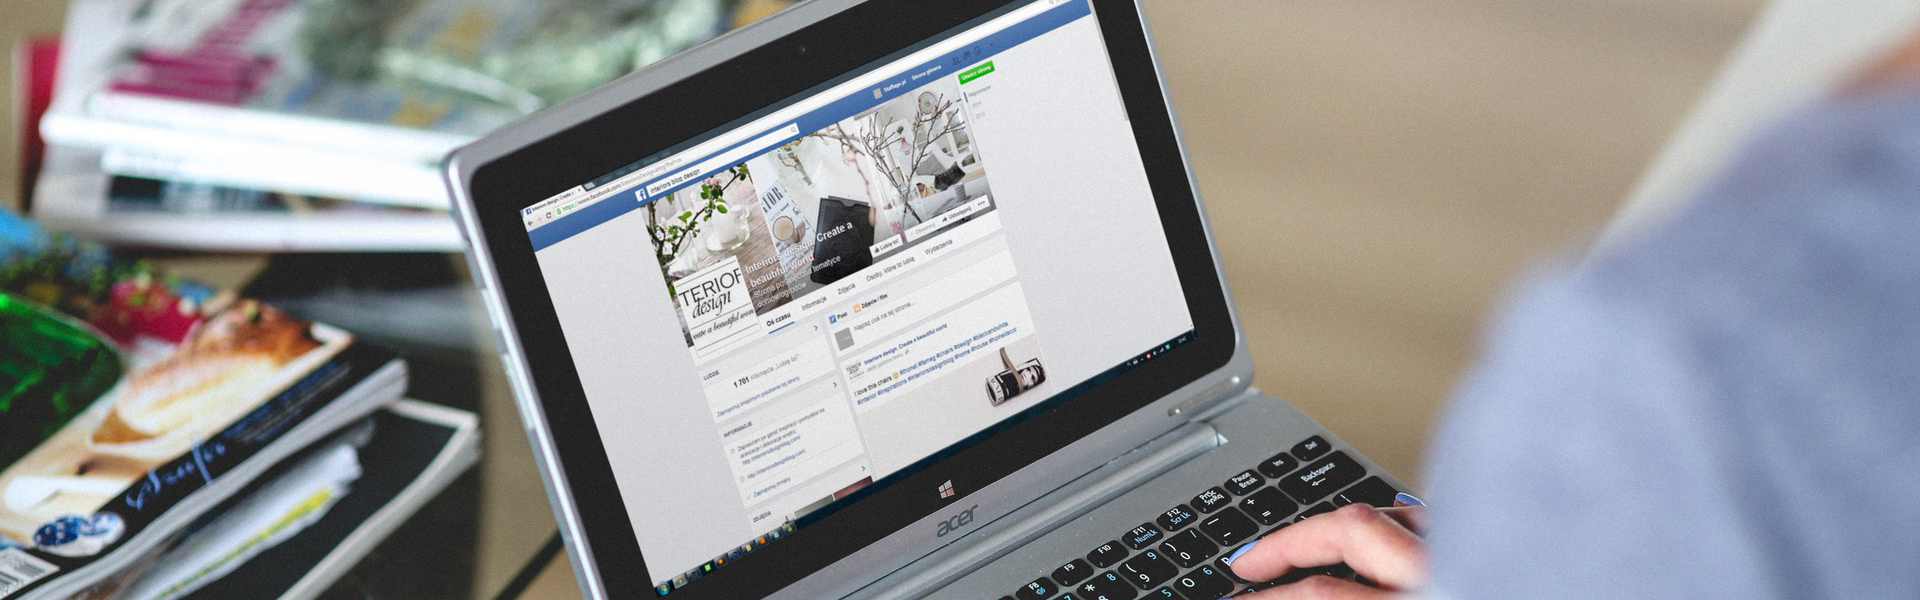 7 Simple Facebook Engagement Ideas To Boost Results